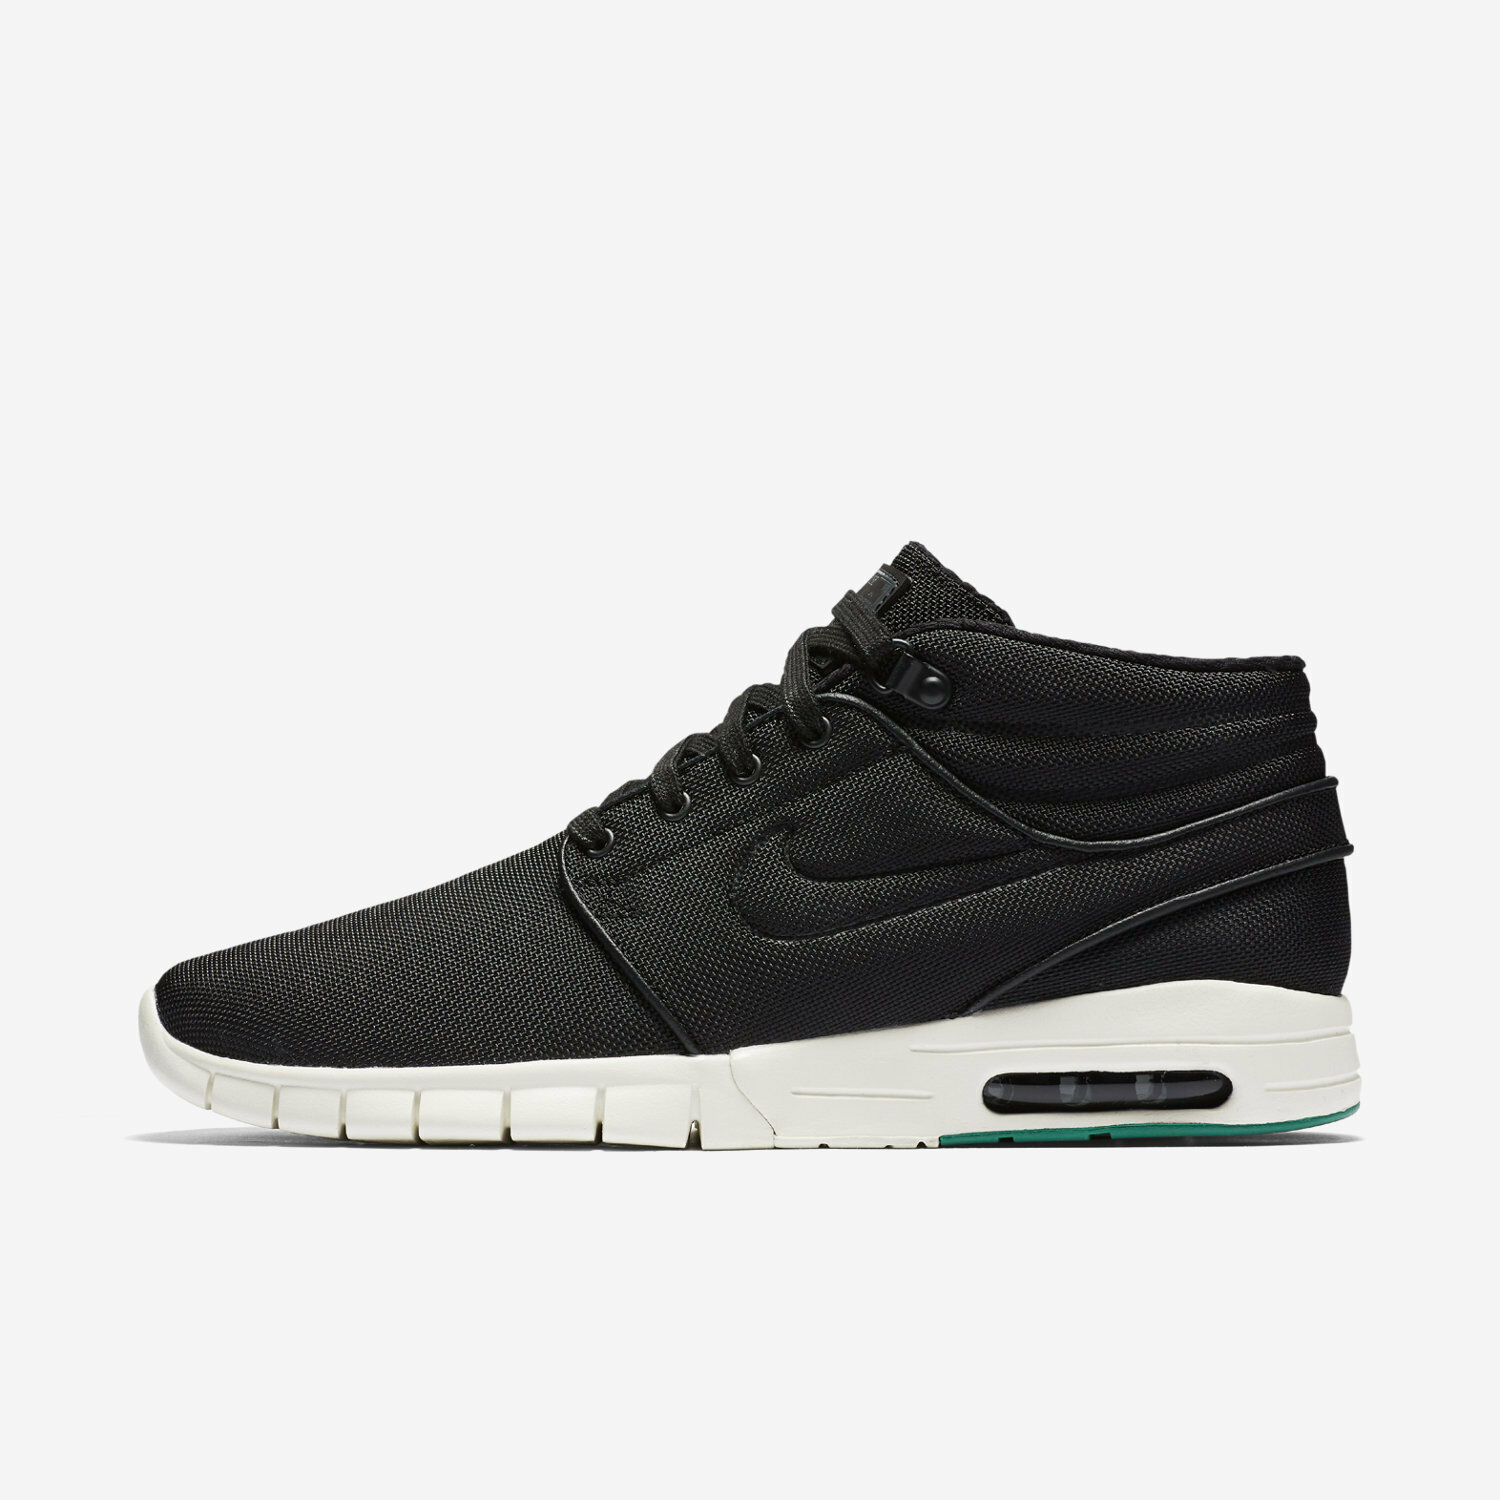 Nike SB Stefan Janoski Max Mid Mens Sz 6.5 Wmn Sz 8 807507-003 Black Skateboard Wild casual shoes New shoes for men and women, limited time discount